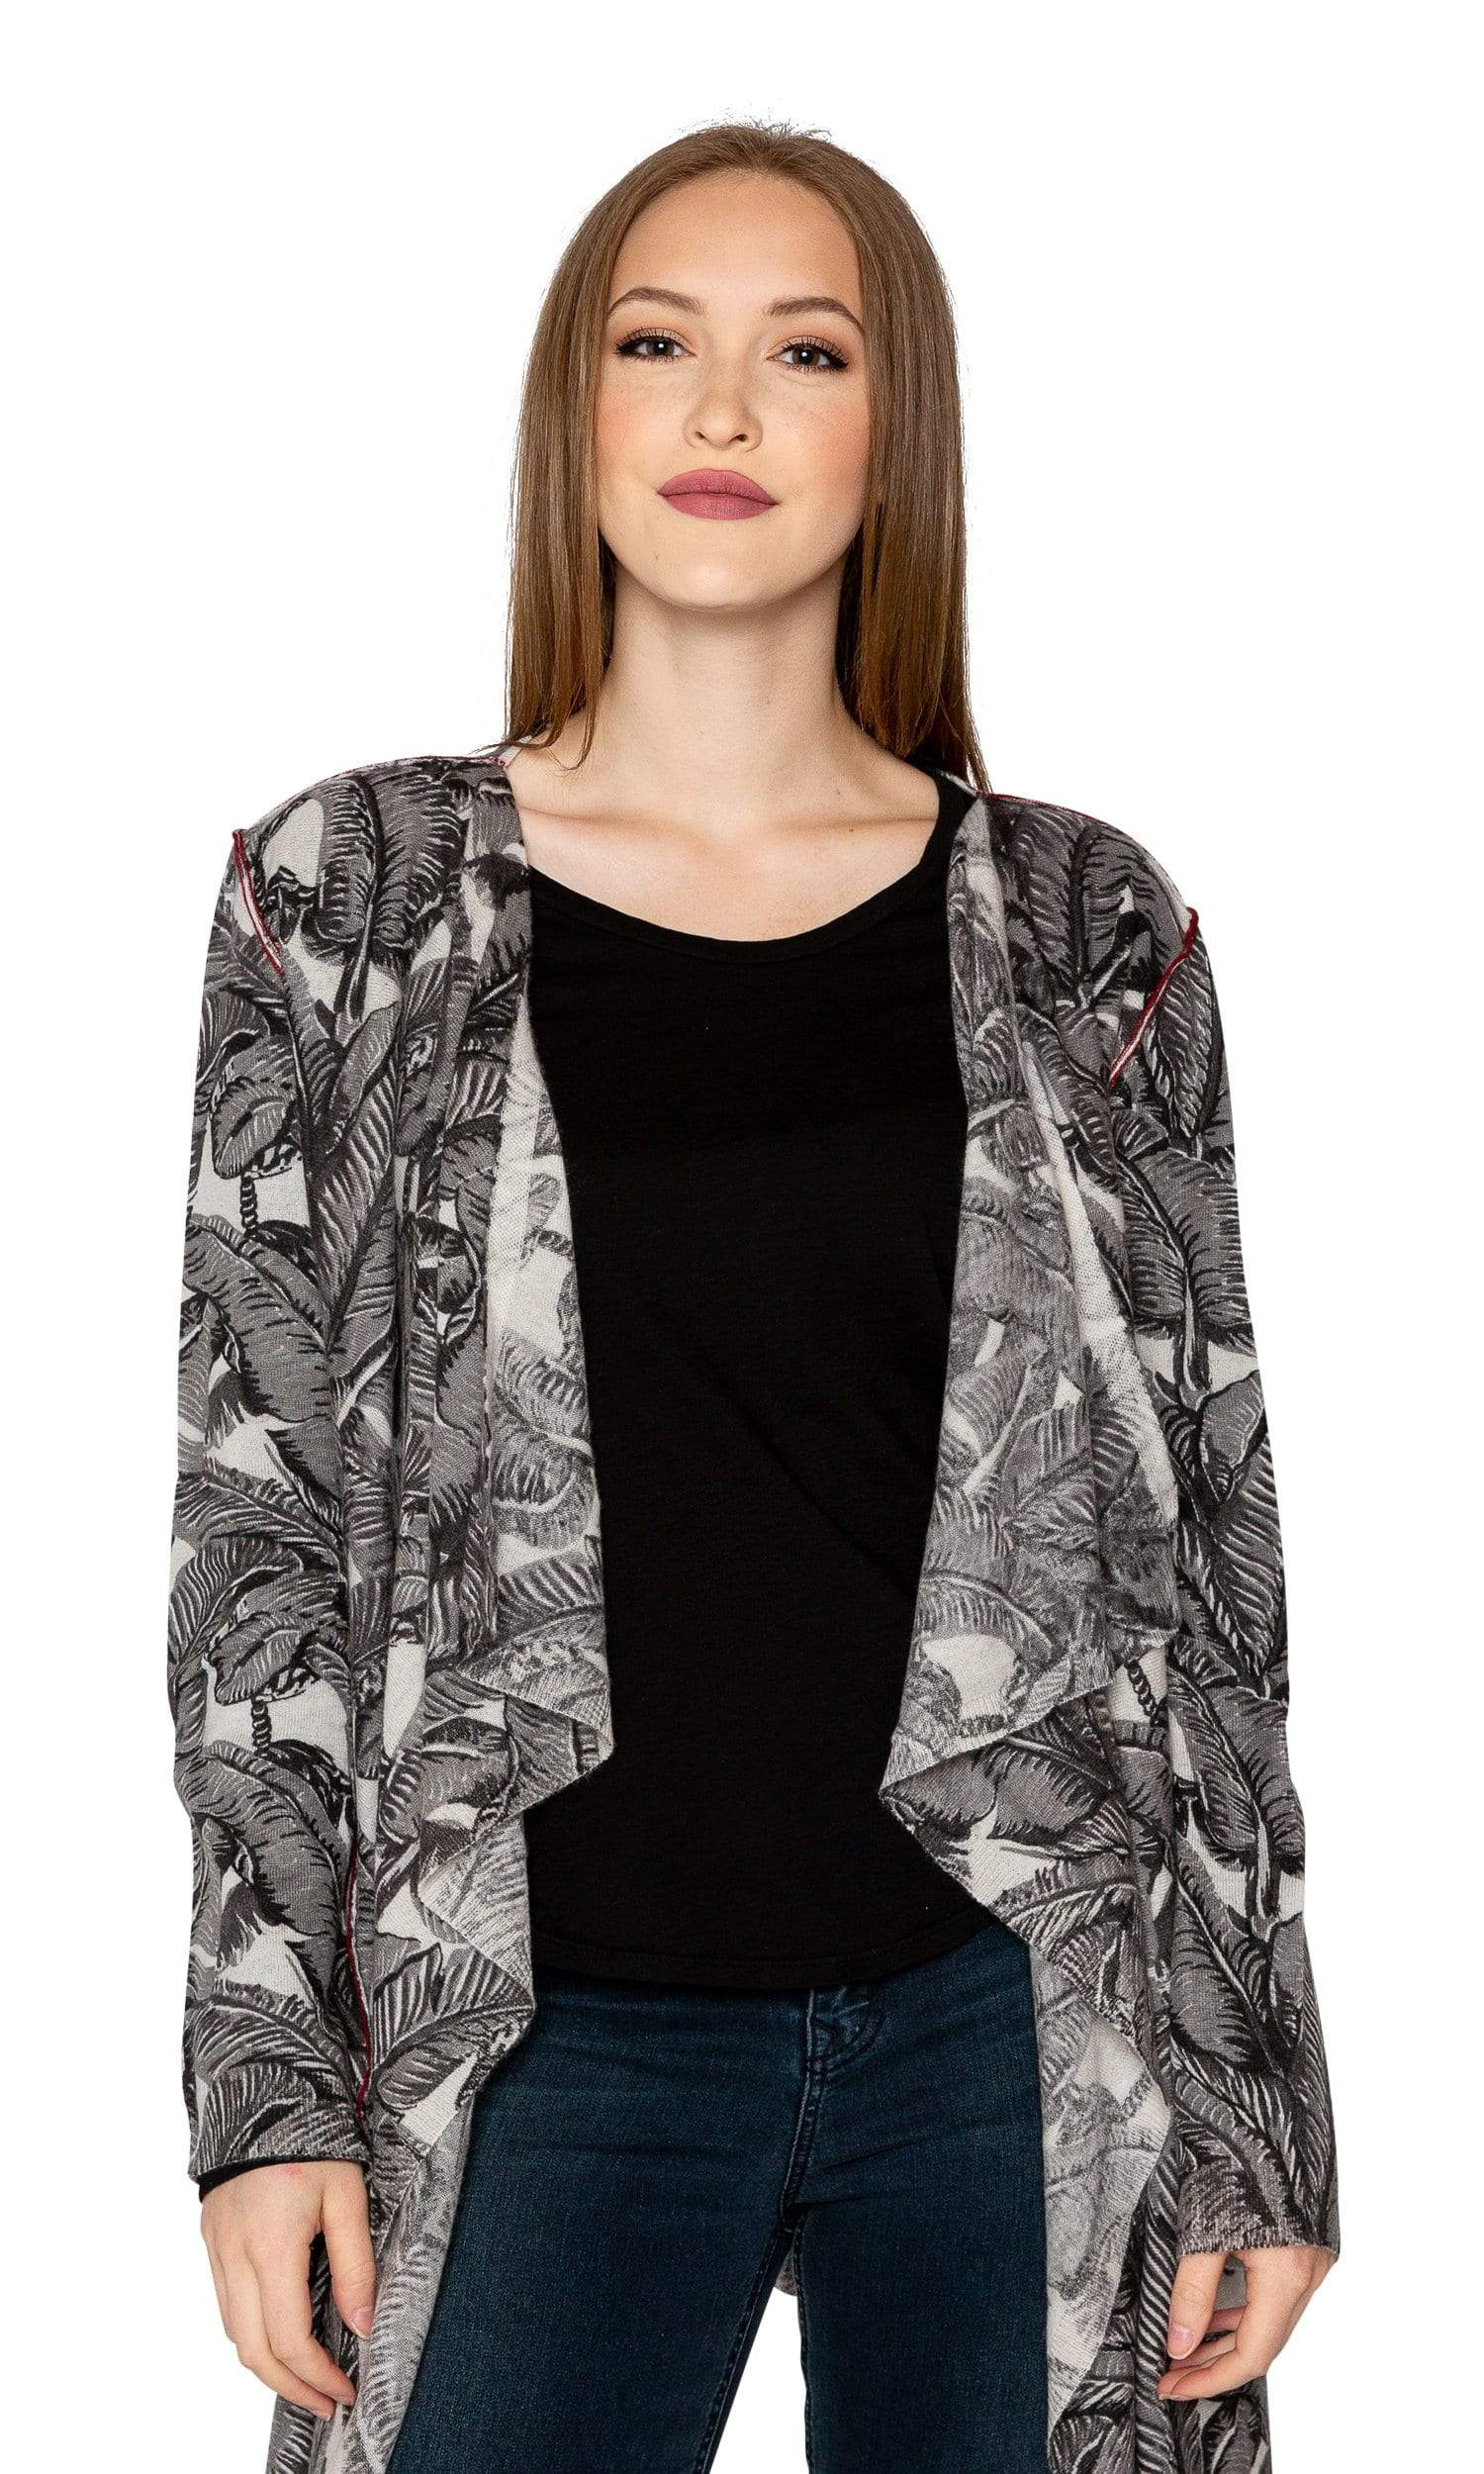 Knitwit Cashmere Open Drape Cardigan - Midnight Paradise